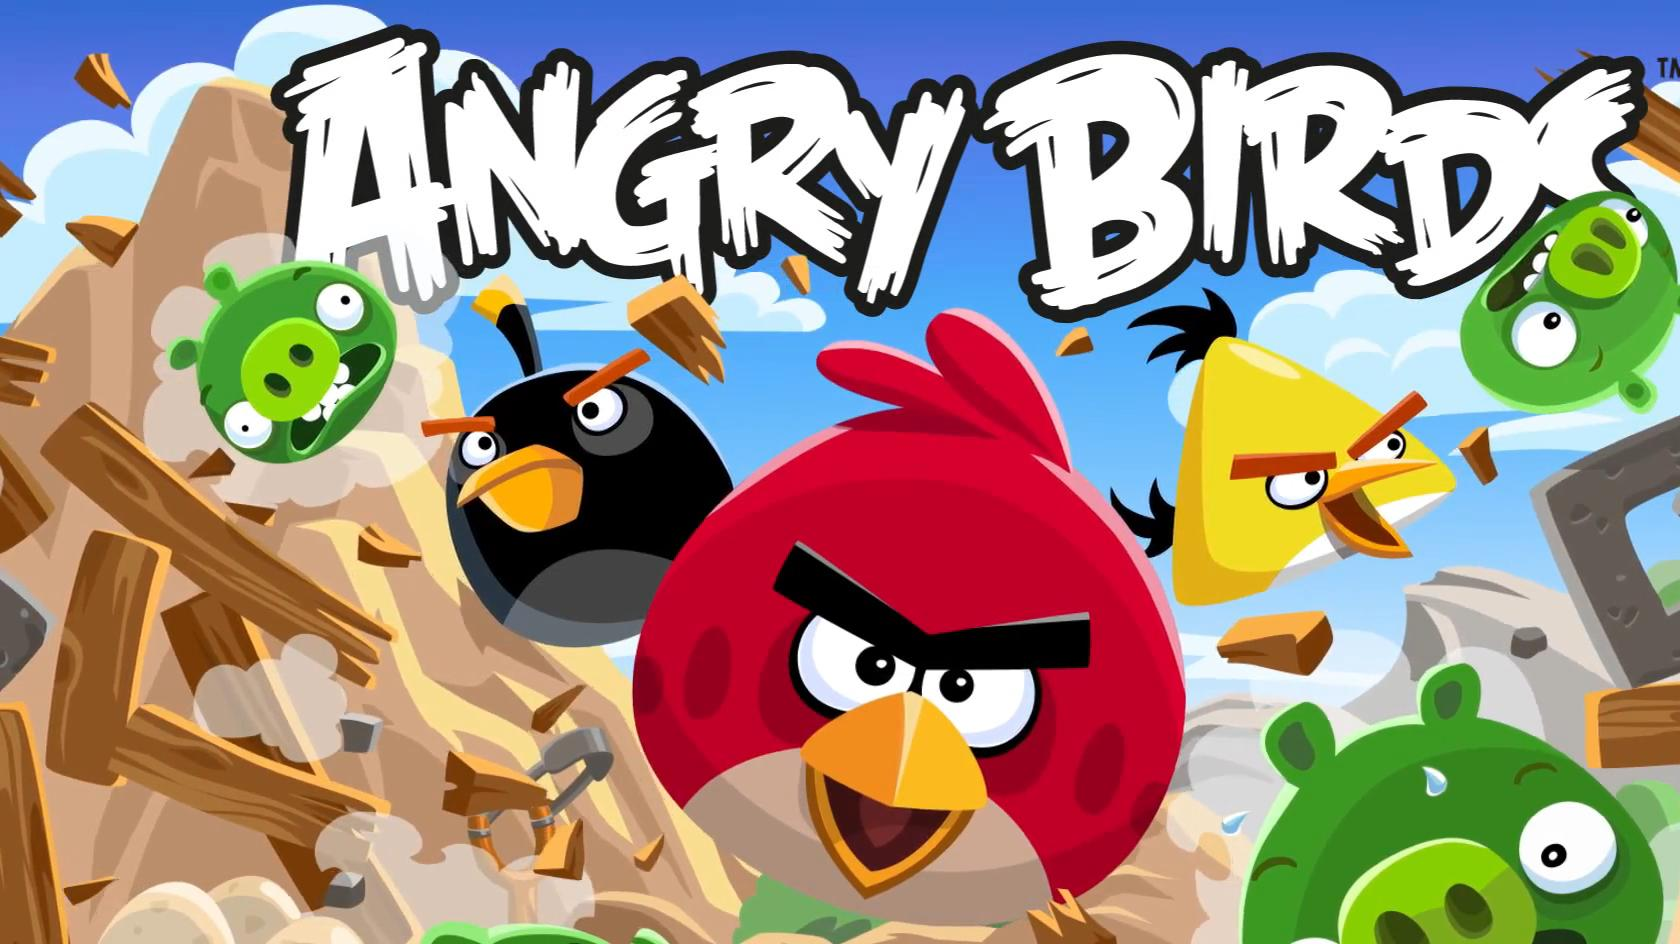 Download Angry Birds Theme